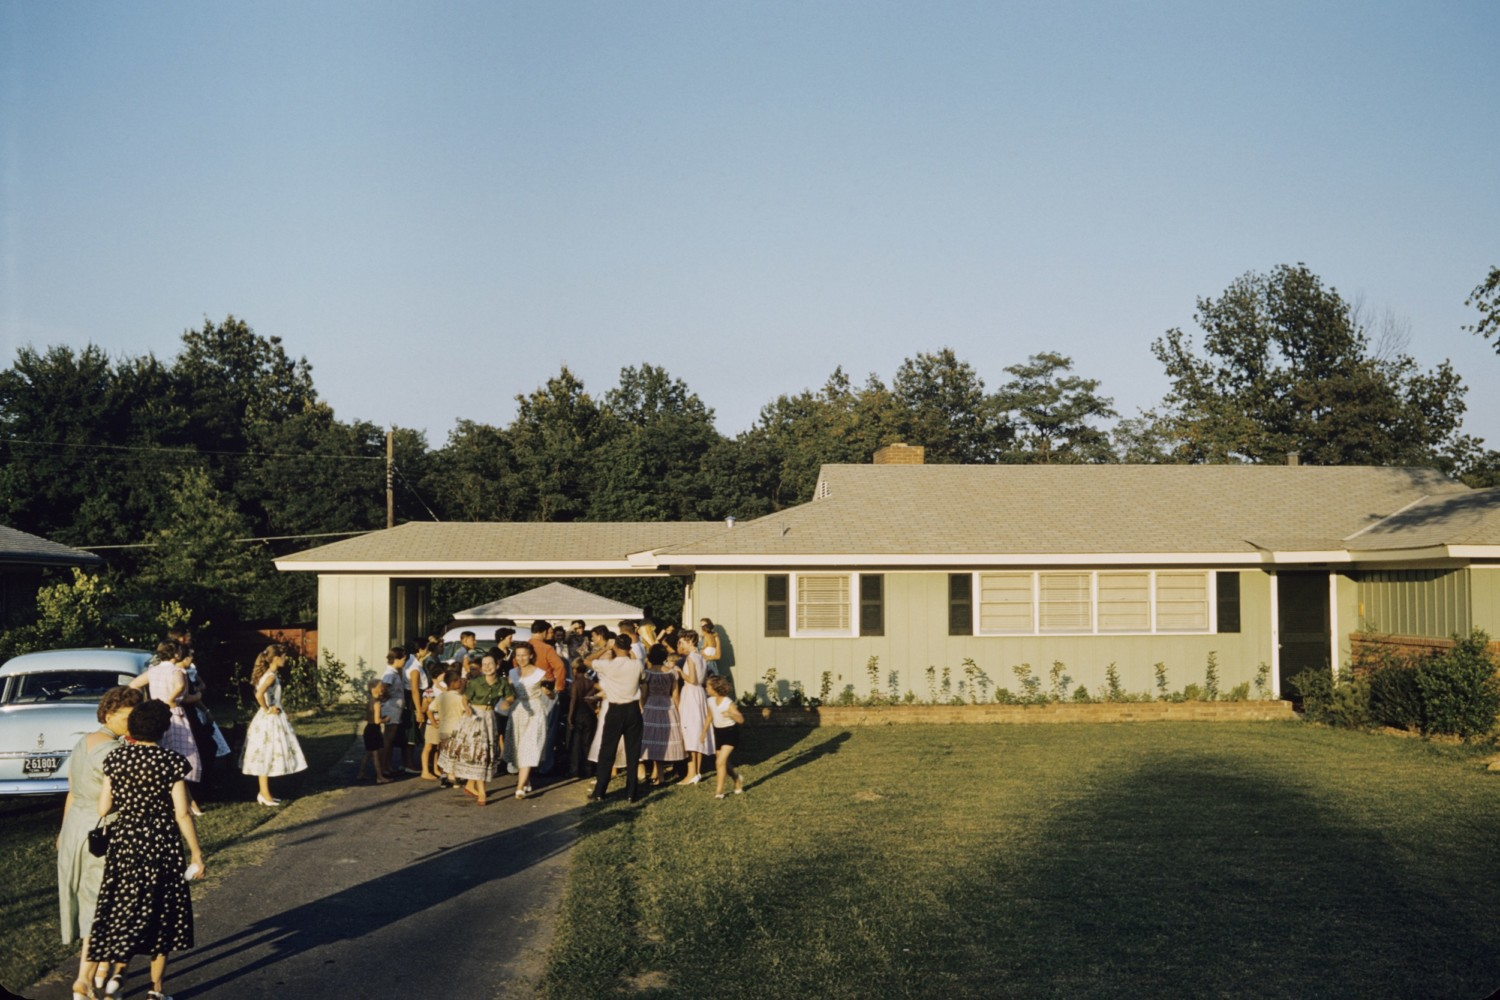 Elvis at Audubon Drive 1956. A Wertheimer July 1956